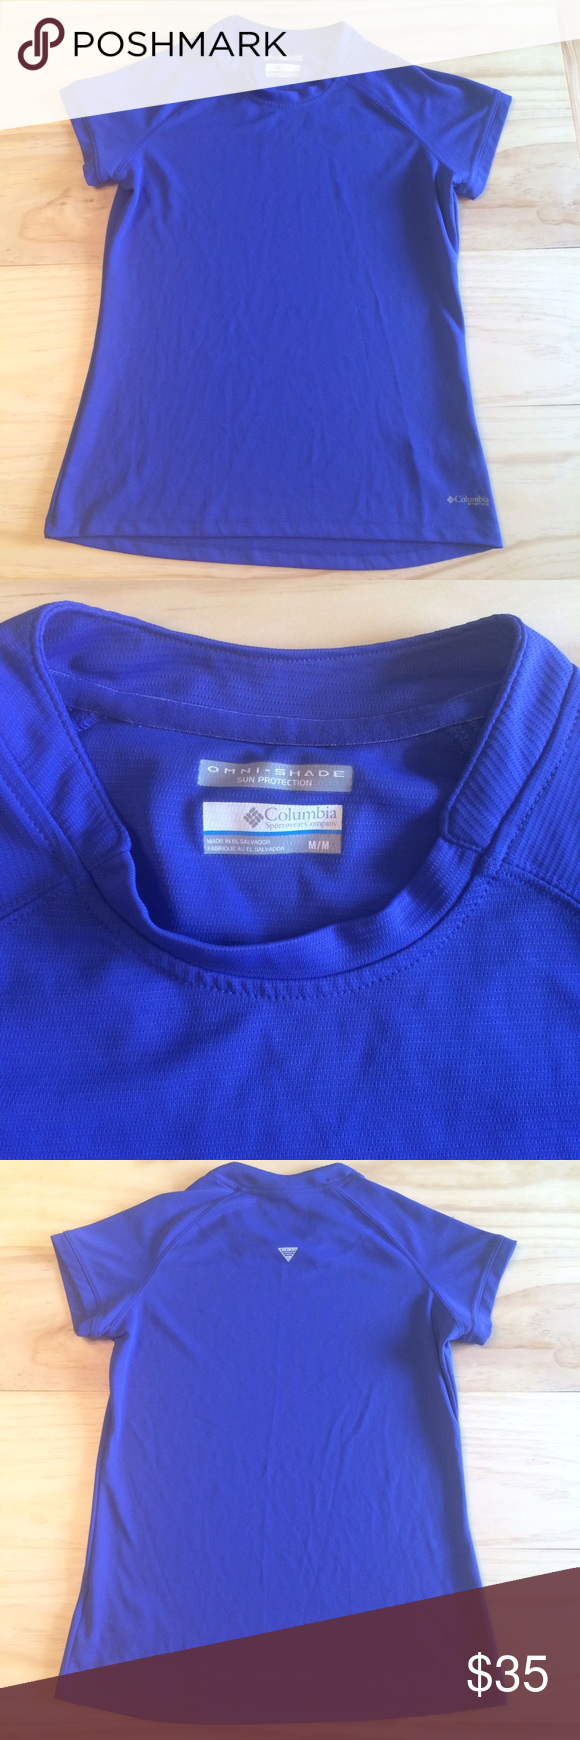 NWOT Columbia Shirt Dri-fit type material. Nice and cool. Bought at Columbia. Removed tags and never wore. Beautiful royal blue, purply color. Great for fishing, boat, etc. A semi-fitted style Columbia Tops